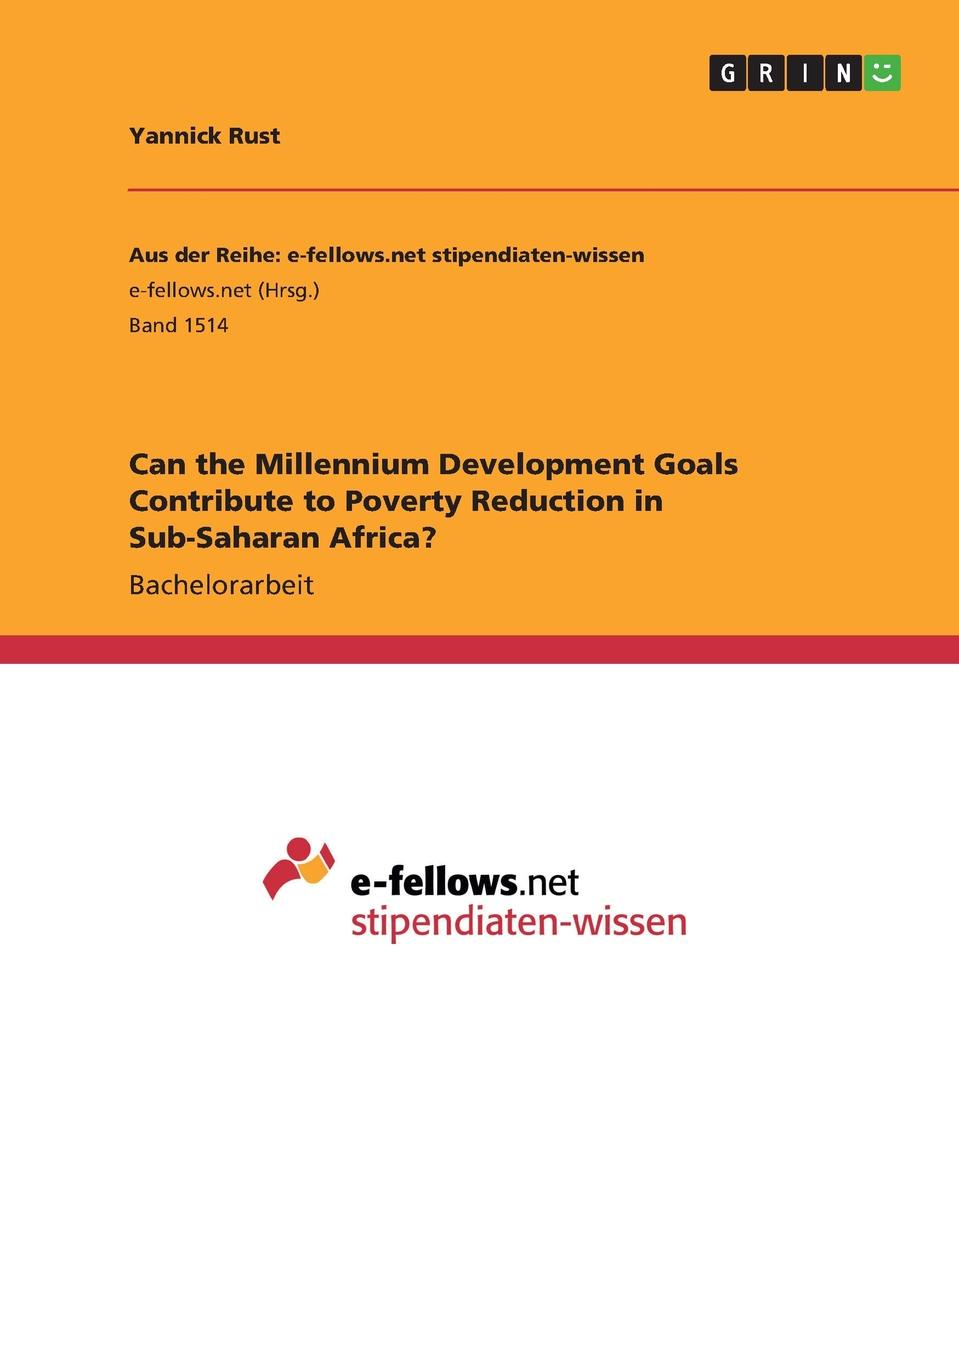 Yannick Rust Can the Millennium Development Goals Contribute to Poverty Reduction in Sub-Saharan Africa. climate change and poverty in sub saharan africa